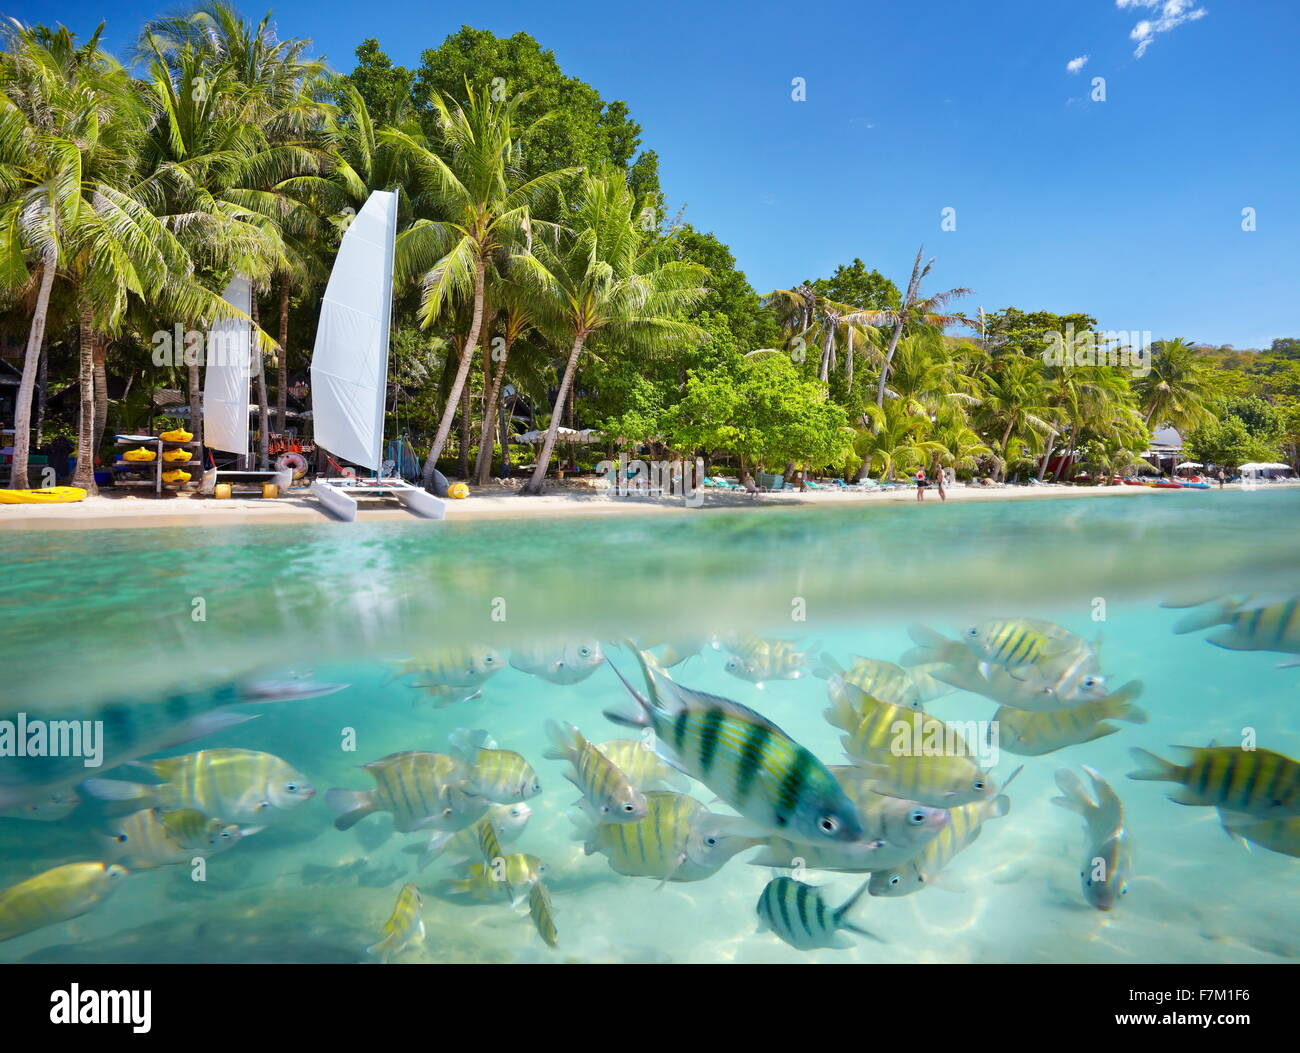 Thailand beach - tropical scenery at Ko Samet Island, Thailand, Asia - Stock Image